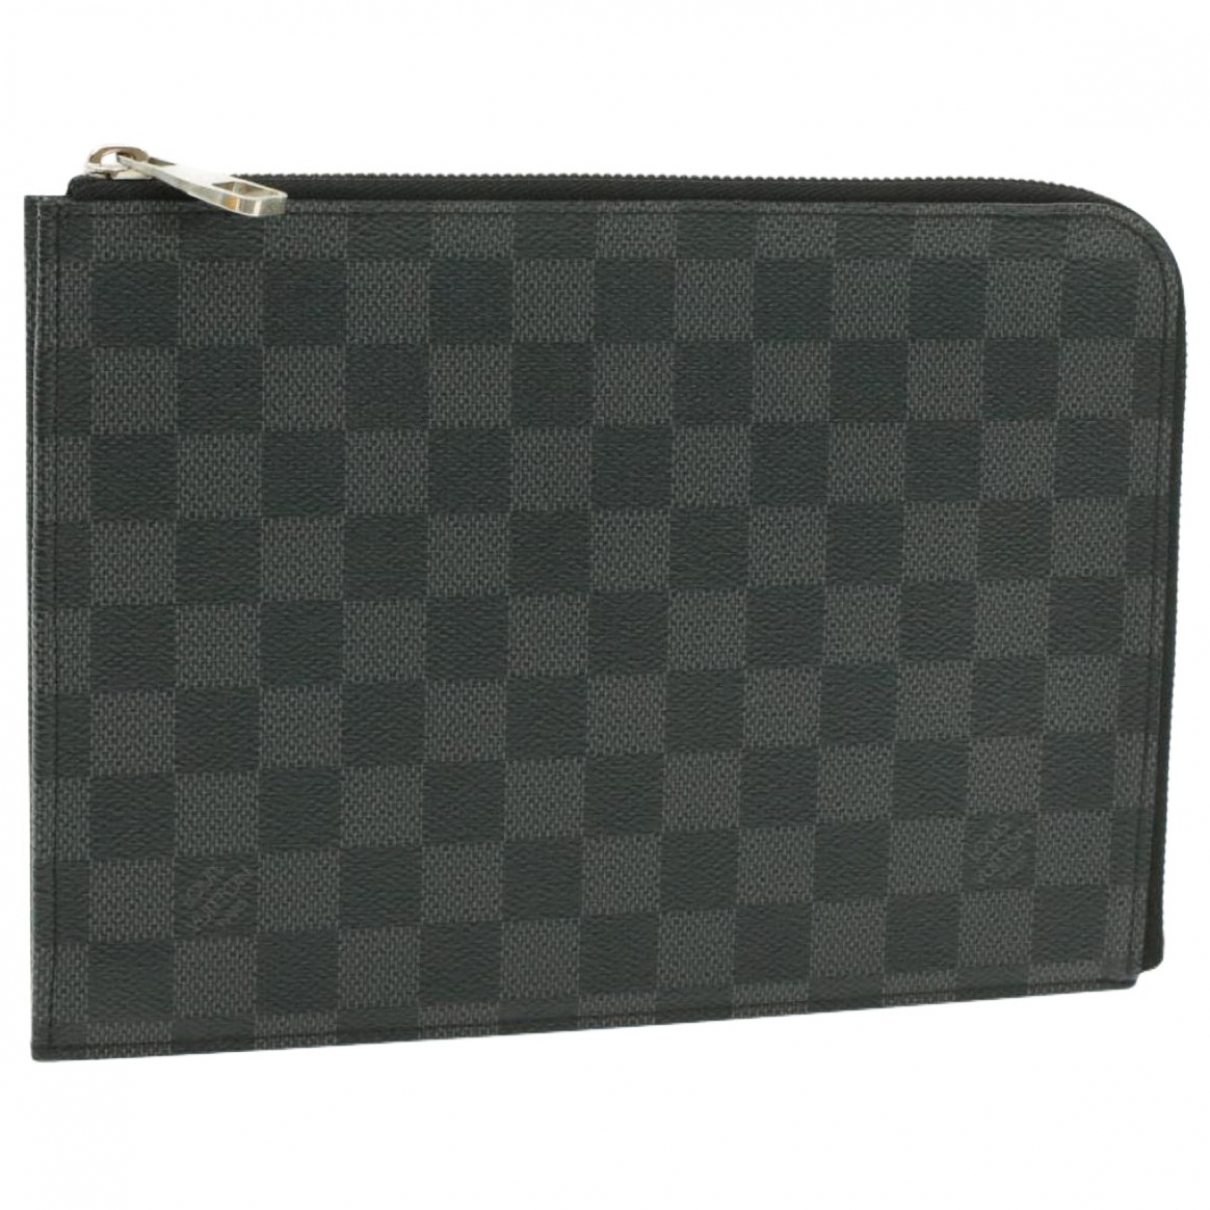 Louis Vuitton \N Clutch in  Schwarz Leinen